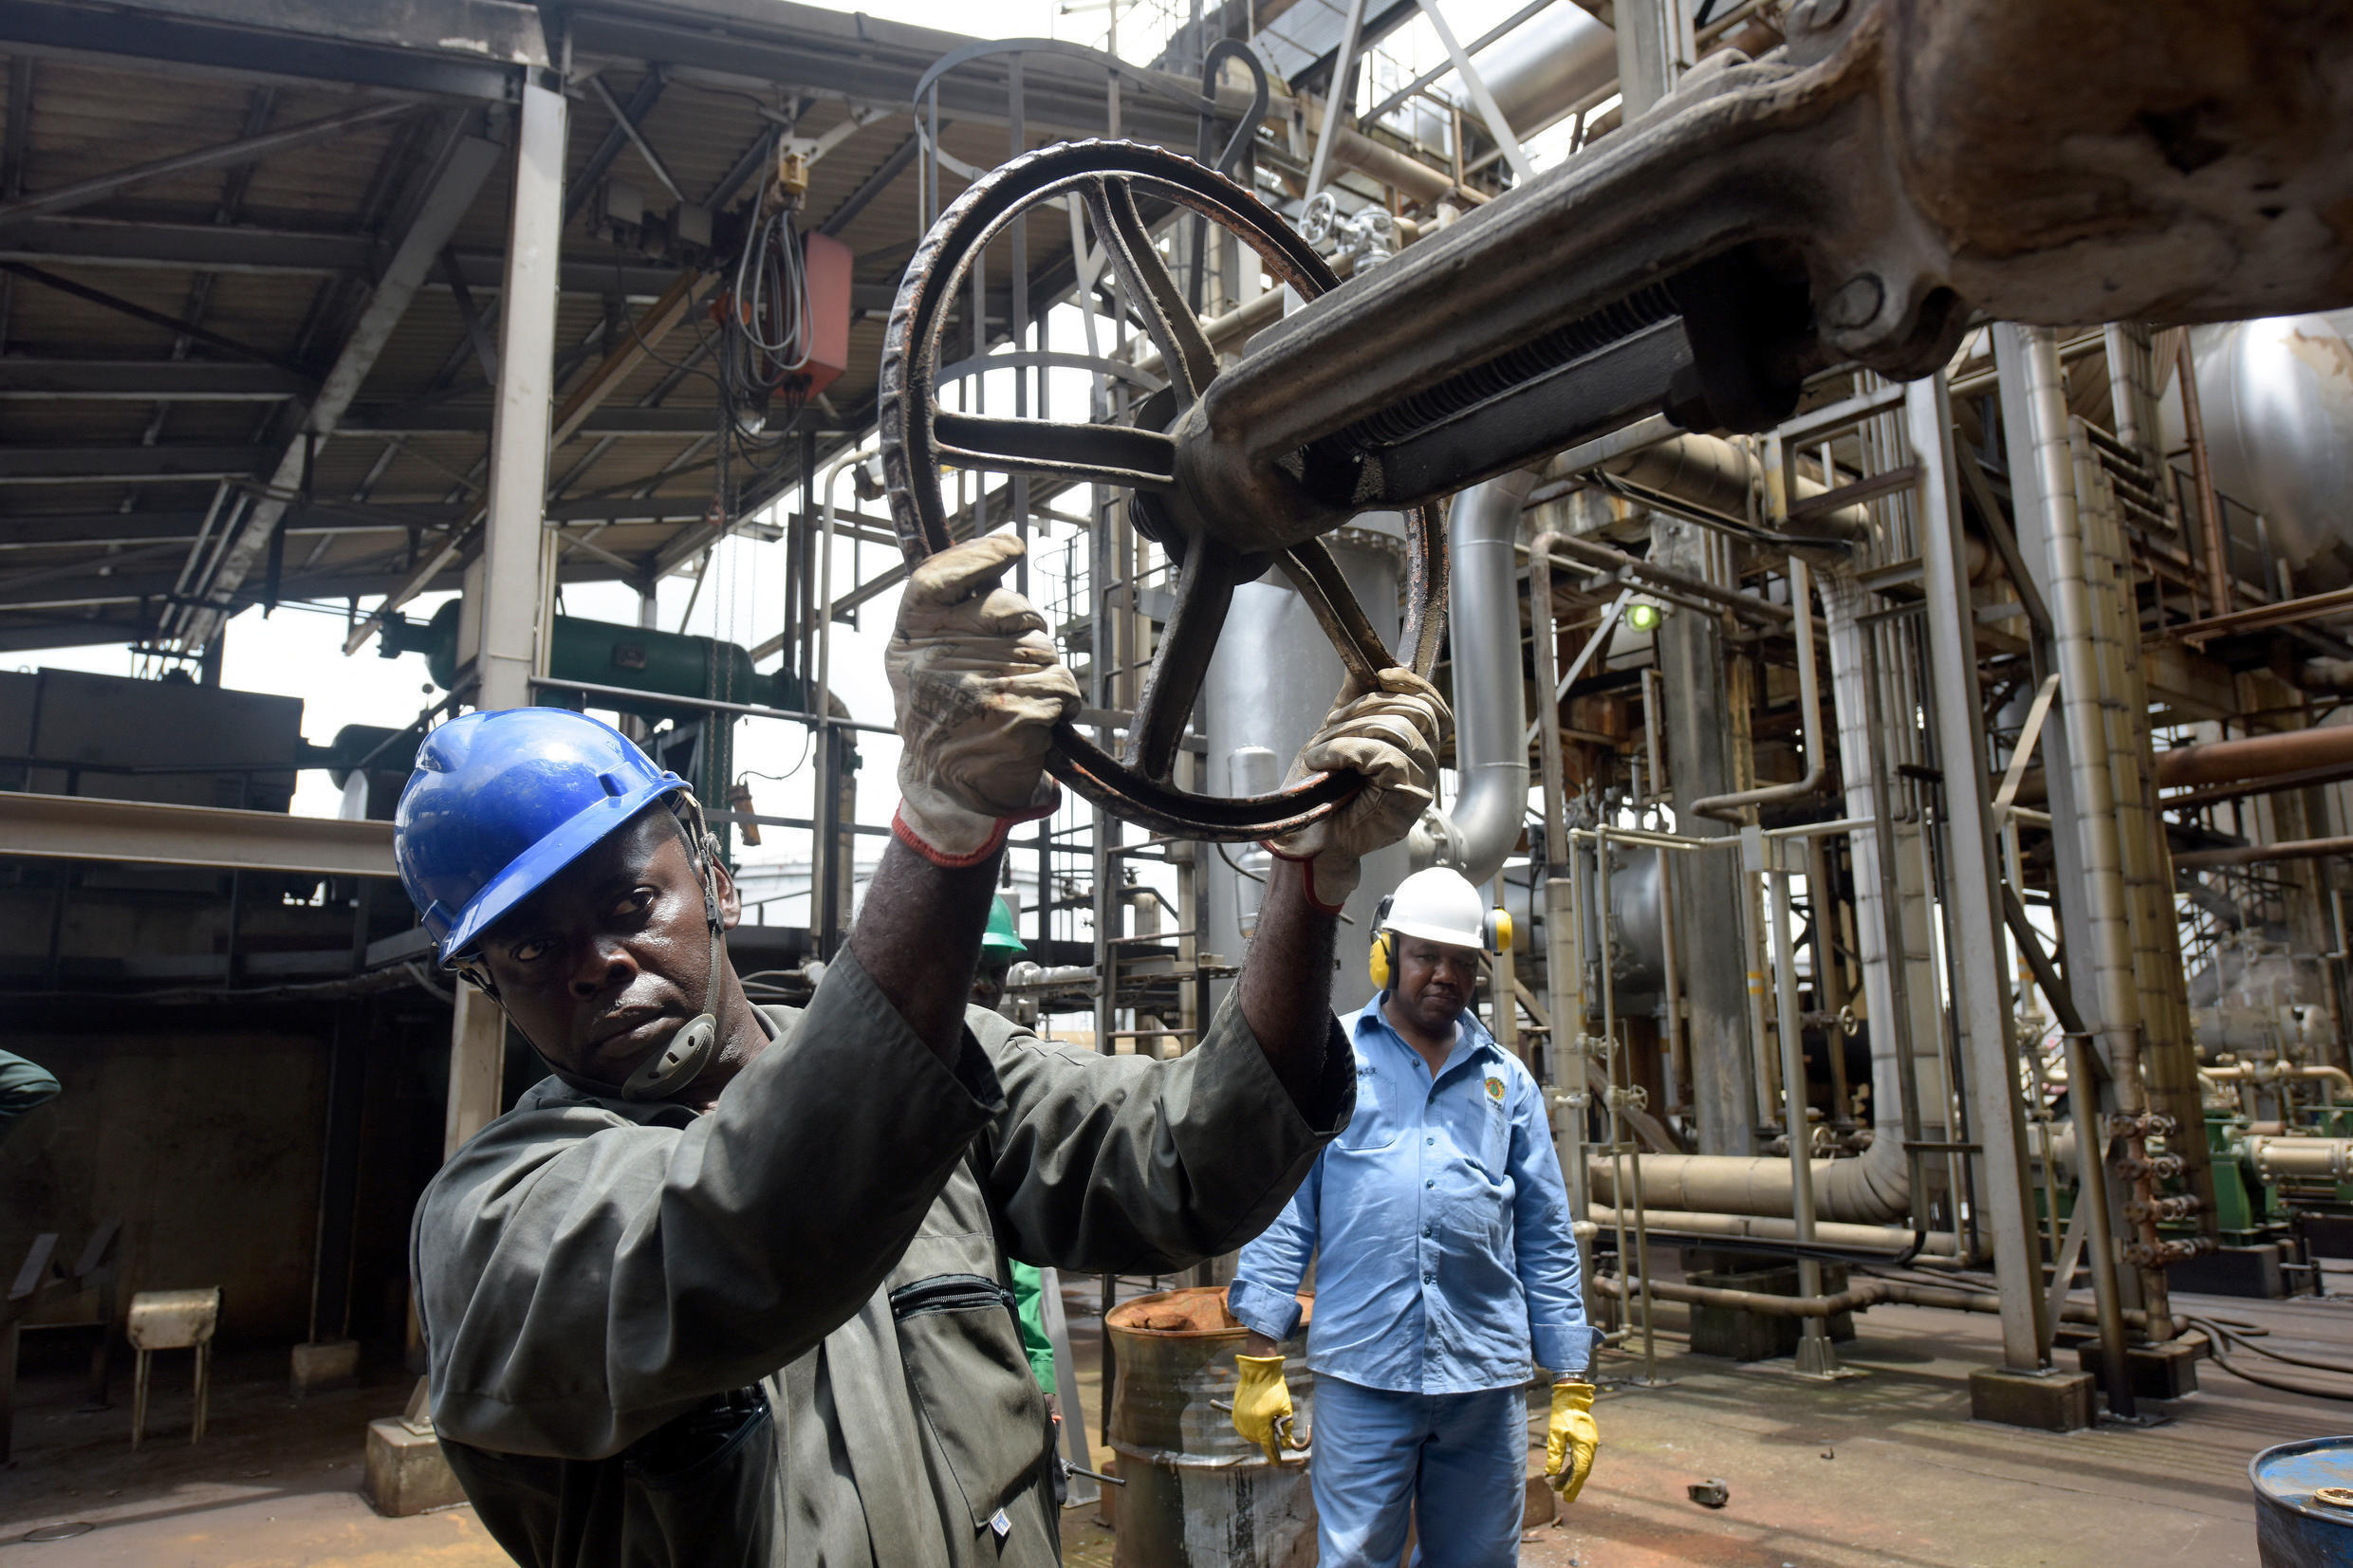 An oil worker controls a valve at the Port Harcourt refinery.